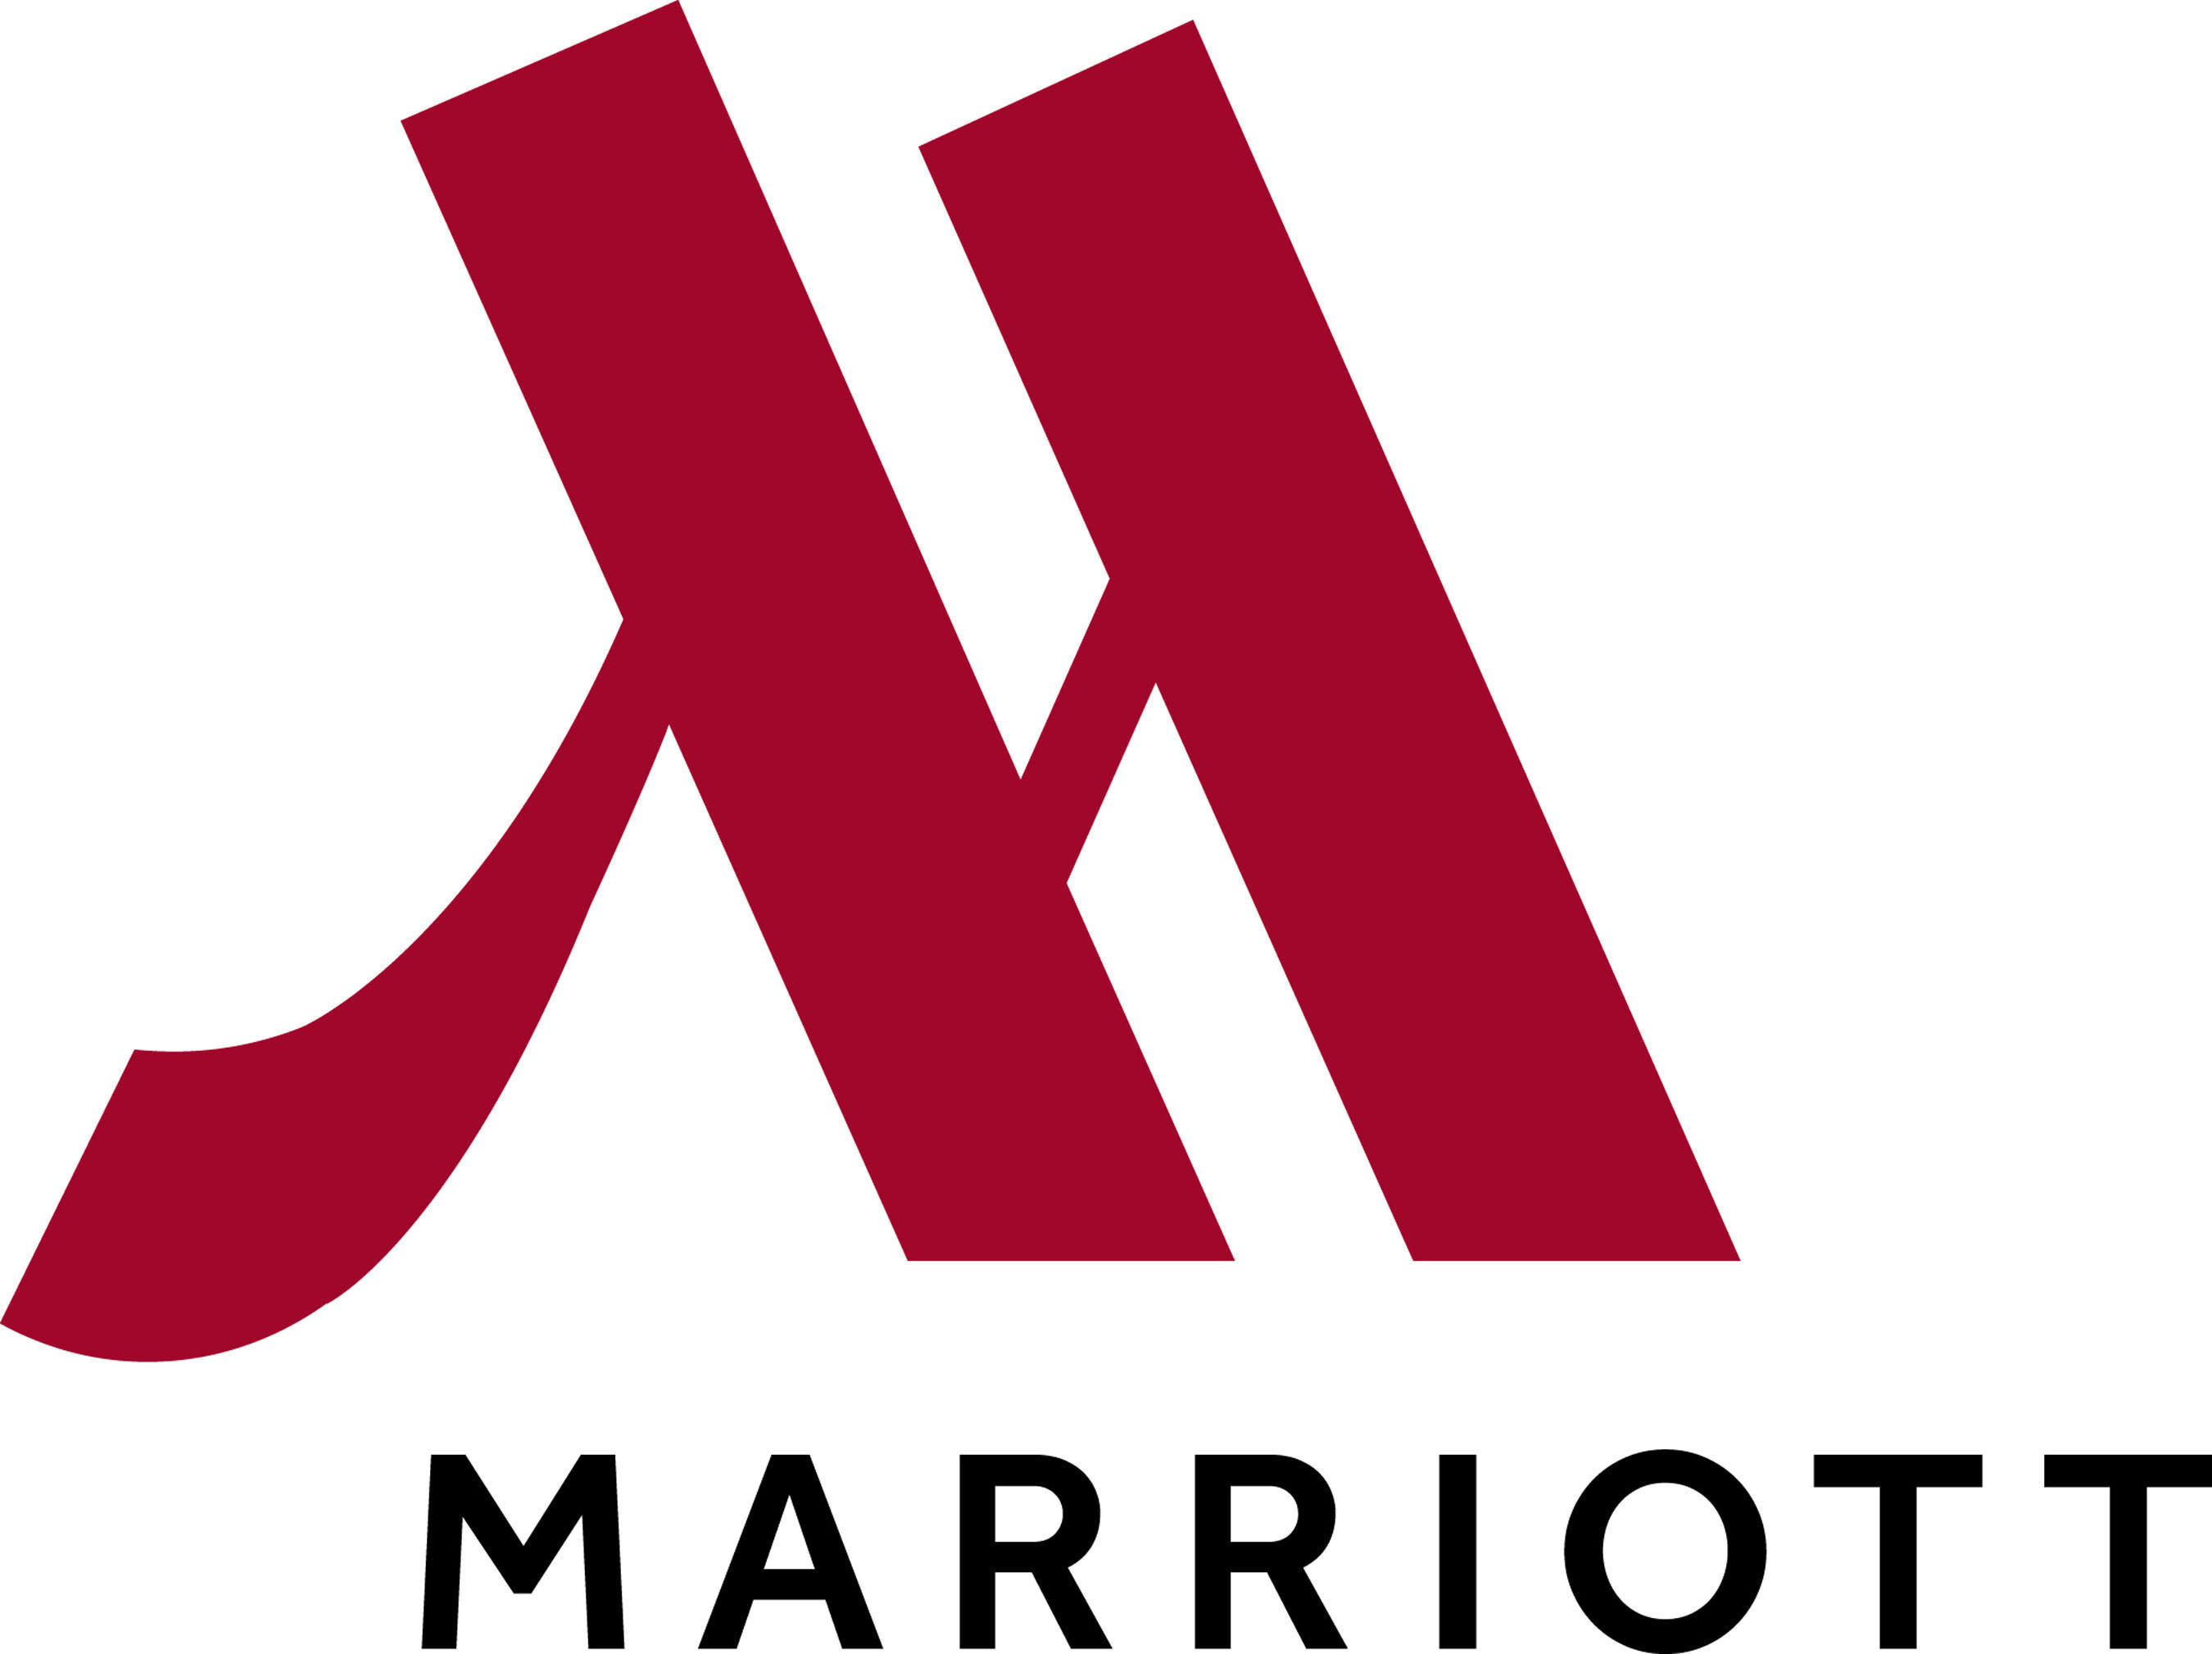 Travelers Can Ask Anything, Anytime, Anywhere with the New, Industry-leading Mobile Request Chat Feature from Marriott Hotels -- Now Available on the Marriott Mobile App